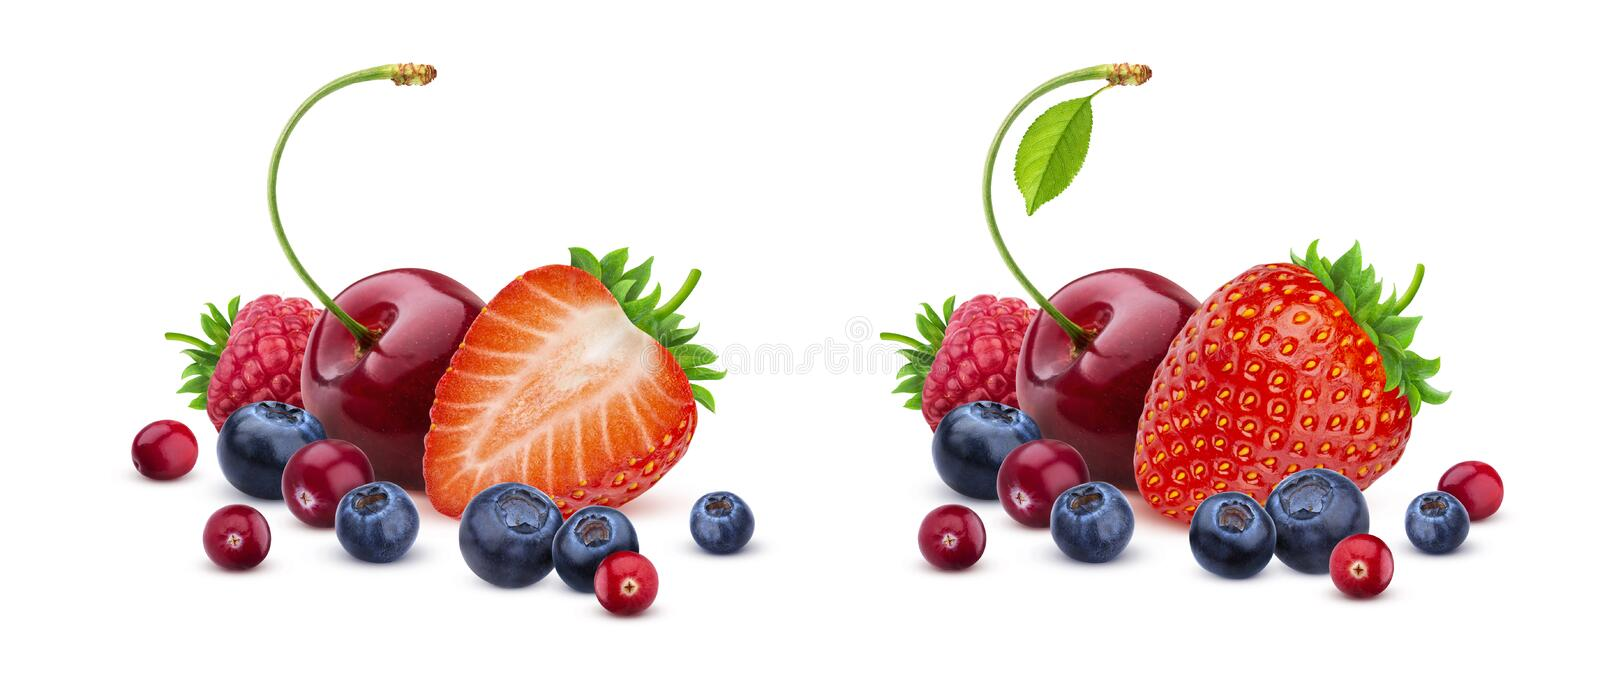 Berry mix isolated on white background, pile of fresh wild berries royalty free stock images